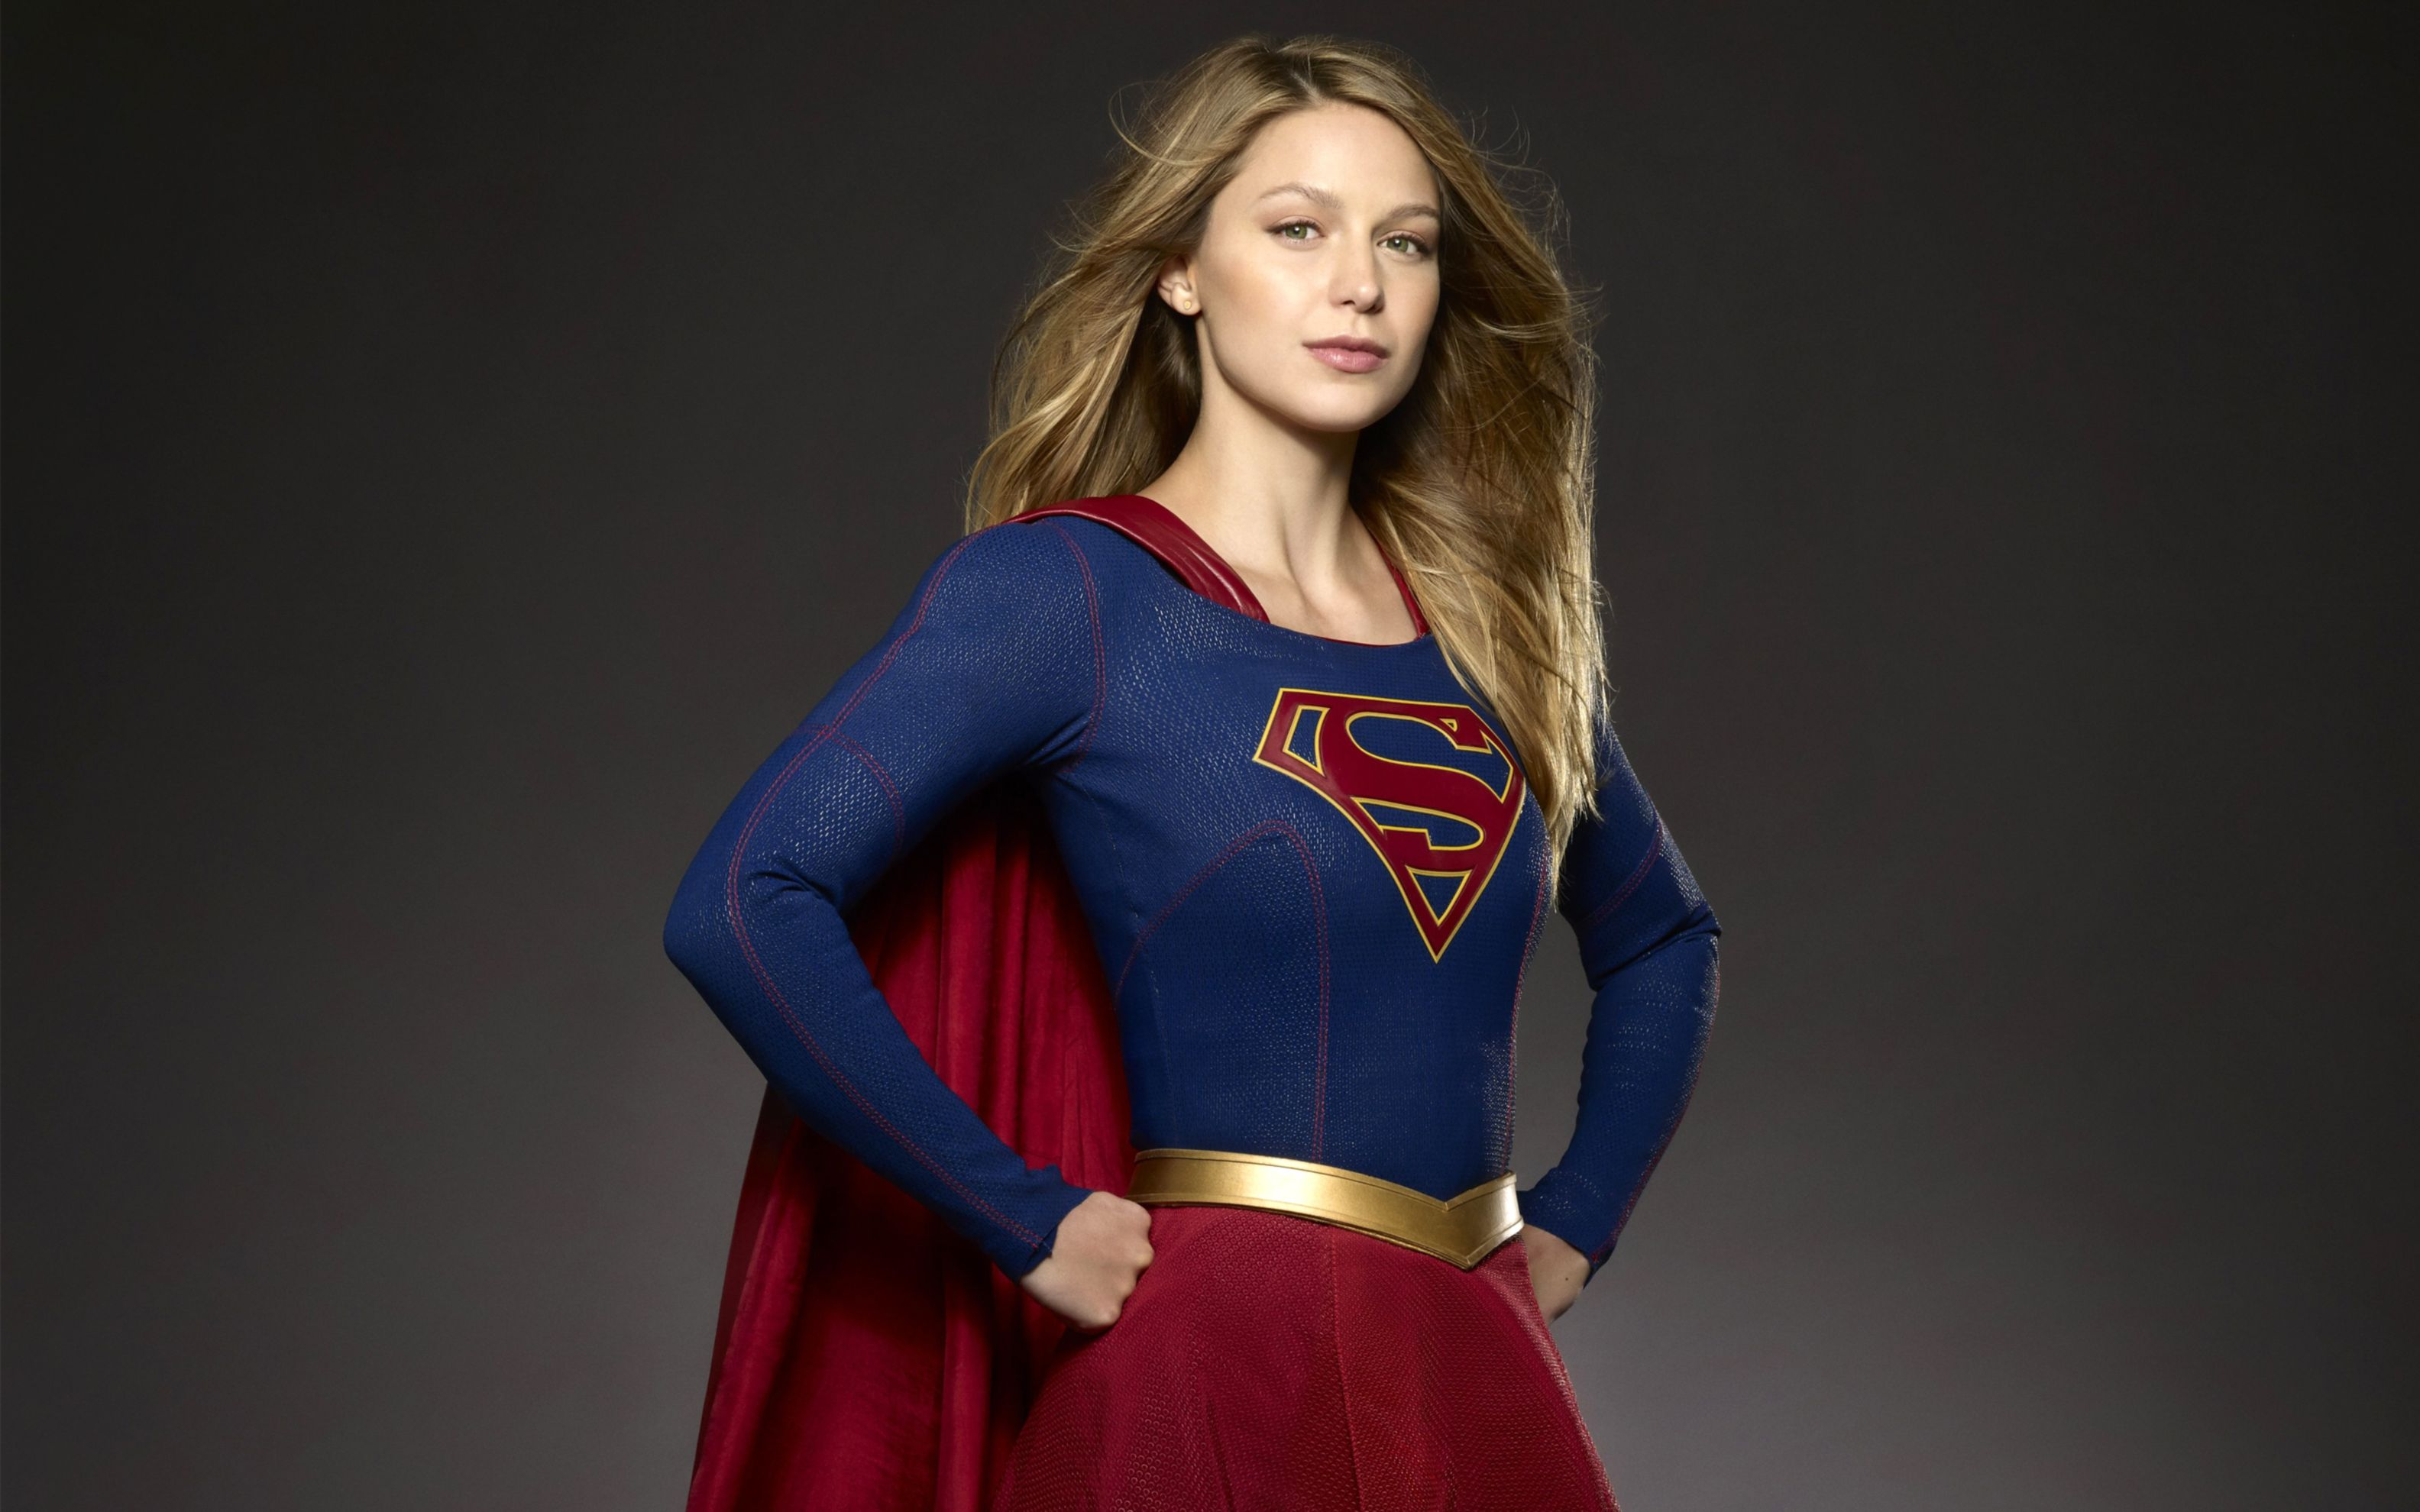 Download free HD Melissa Benoist Supergirl TV Series Wide Wallpaper, image